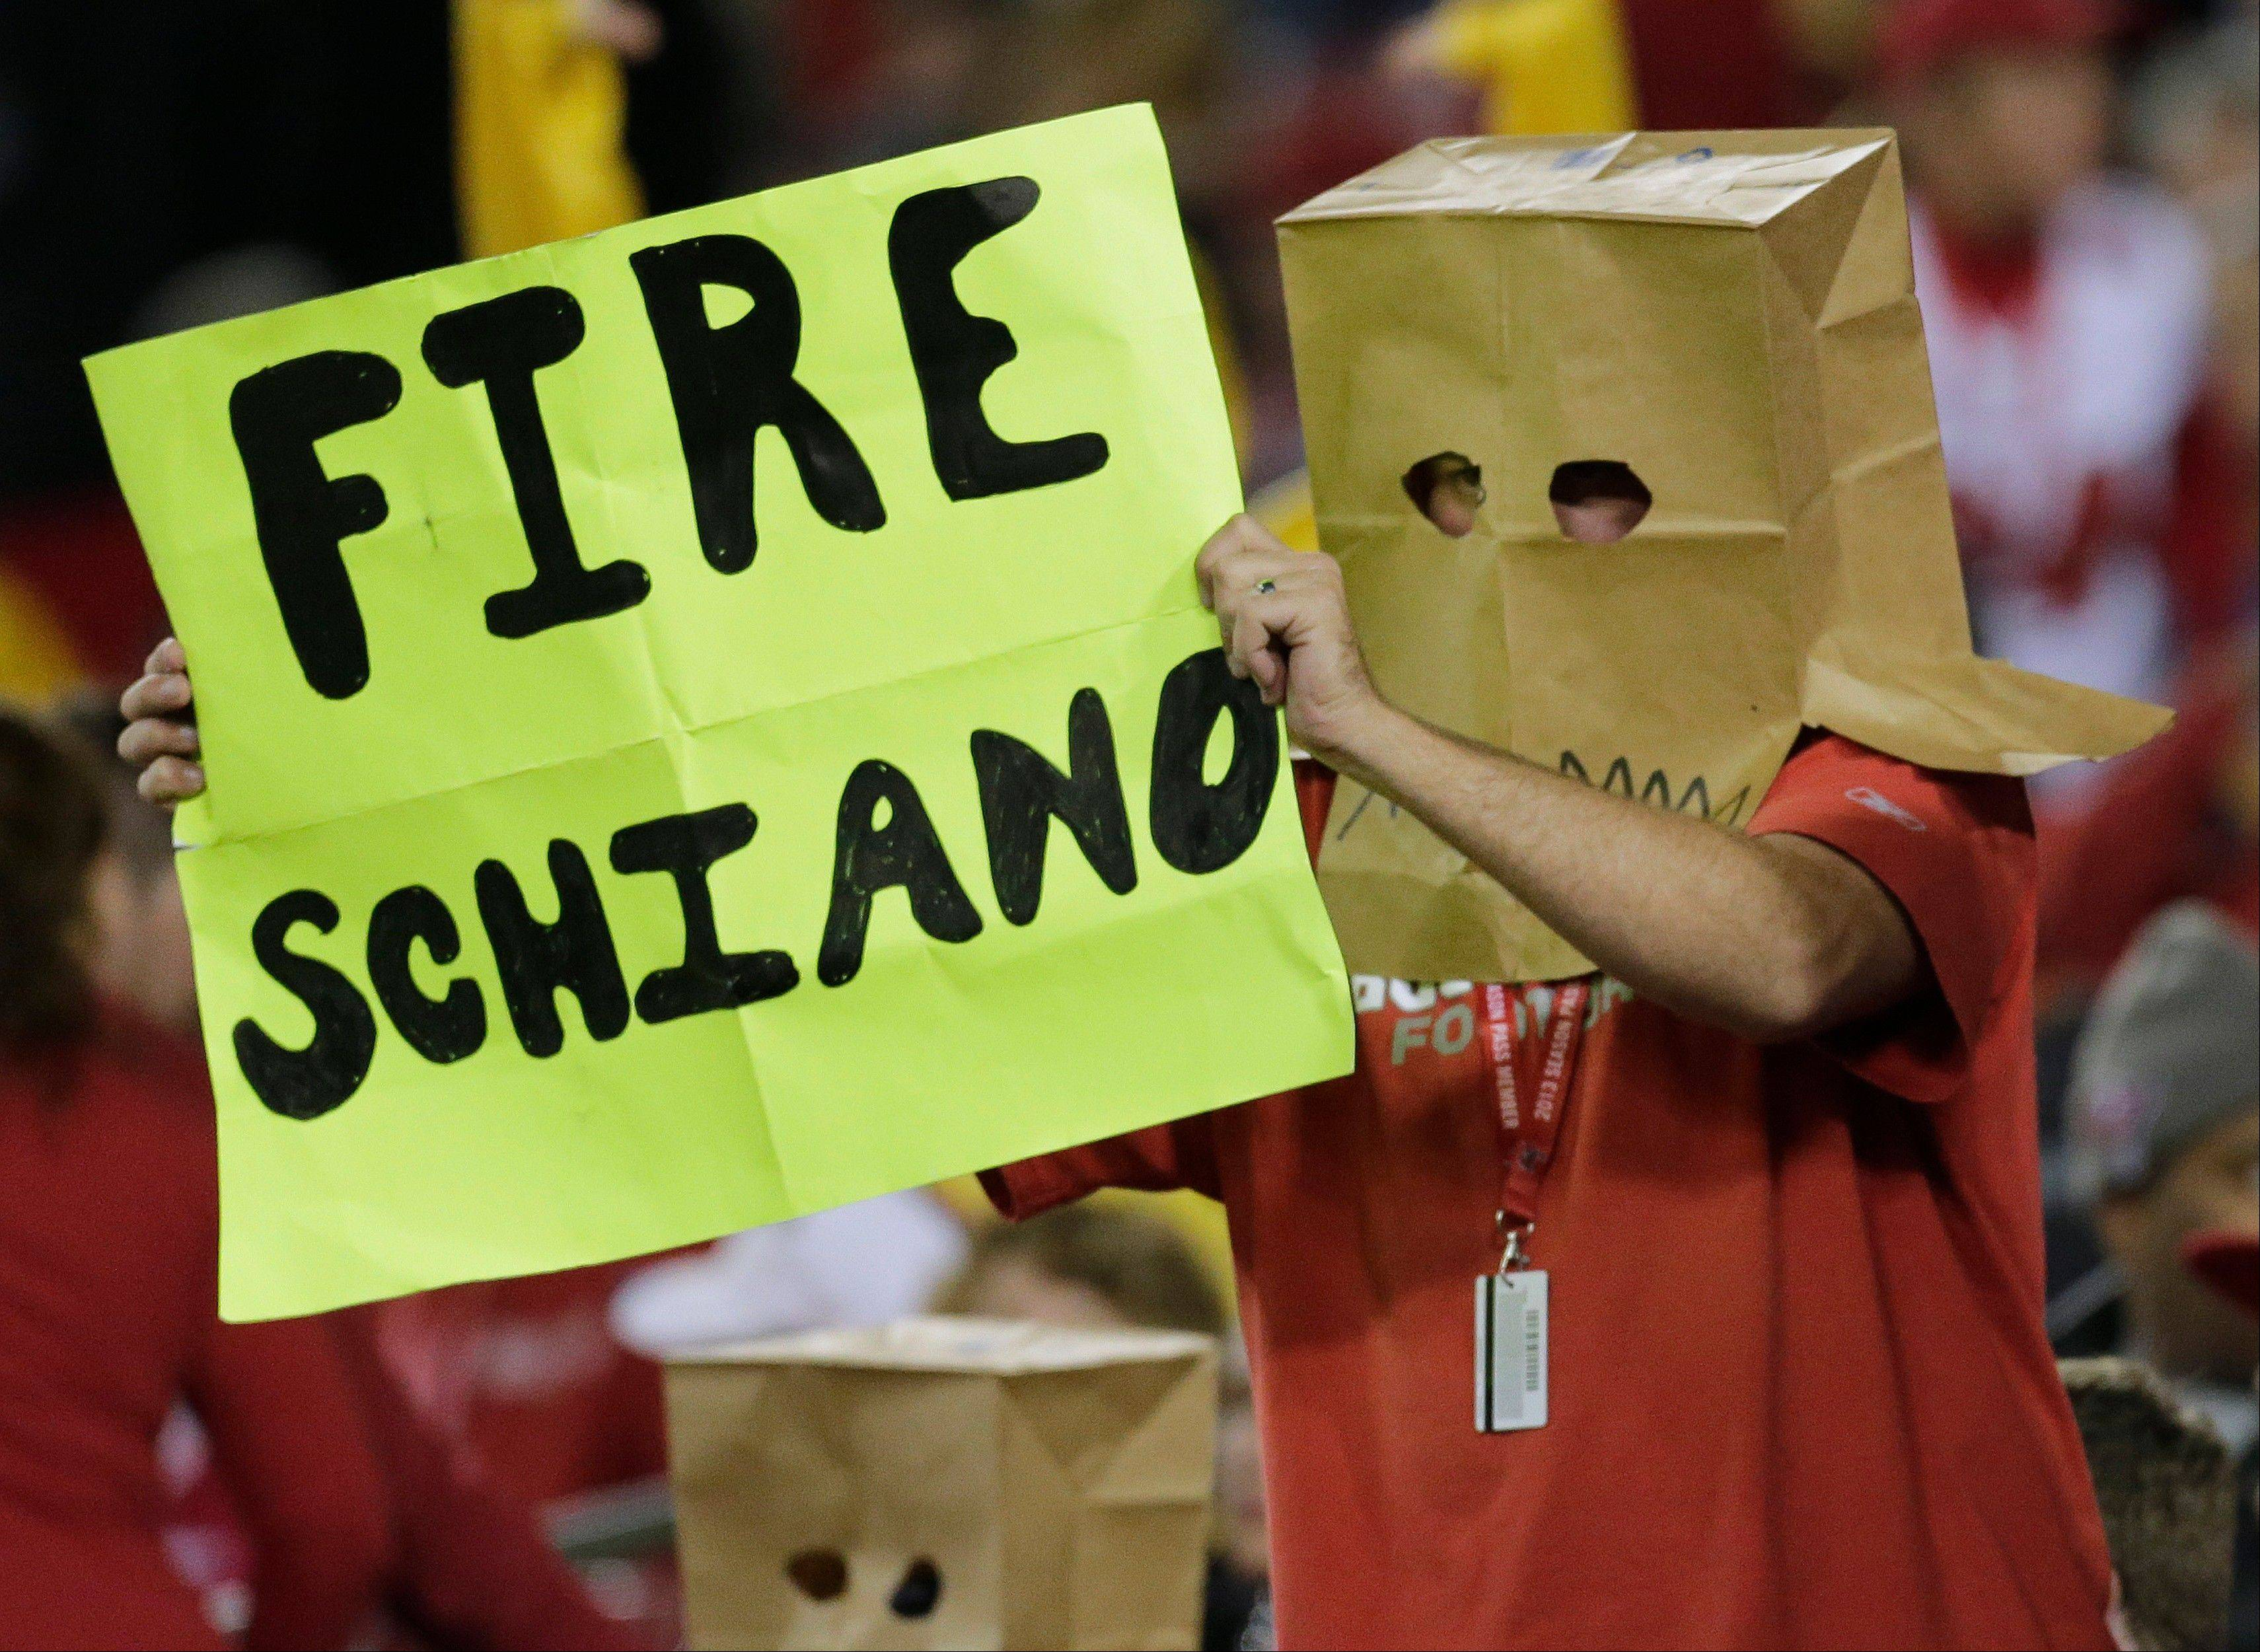 A Buccaneers fan displays the sentiment of many in Tampa. The Buccaneers have lost 12 of 13 dating back to last season, ratcheting up the pressure on second-year head coach Greg Schiano.